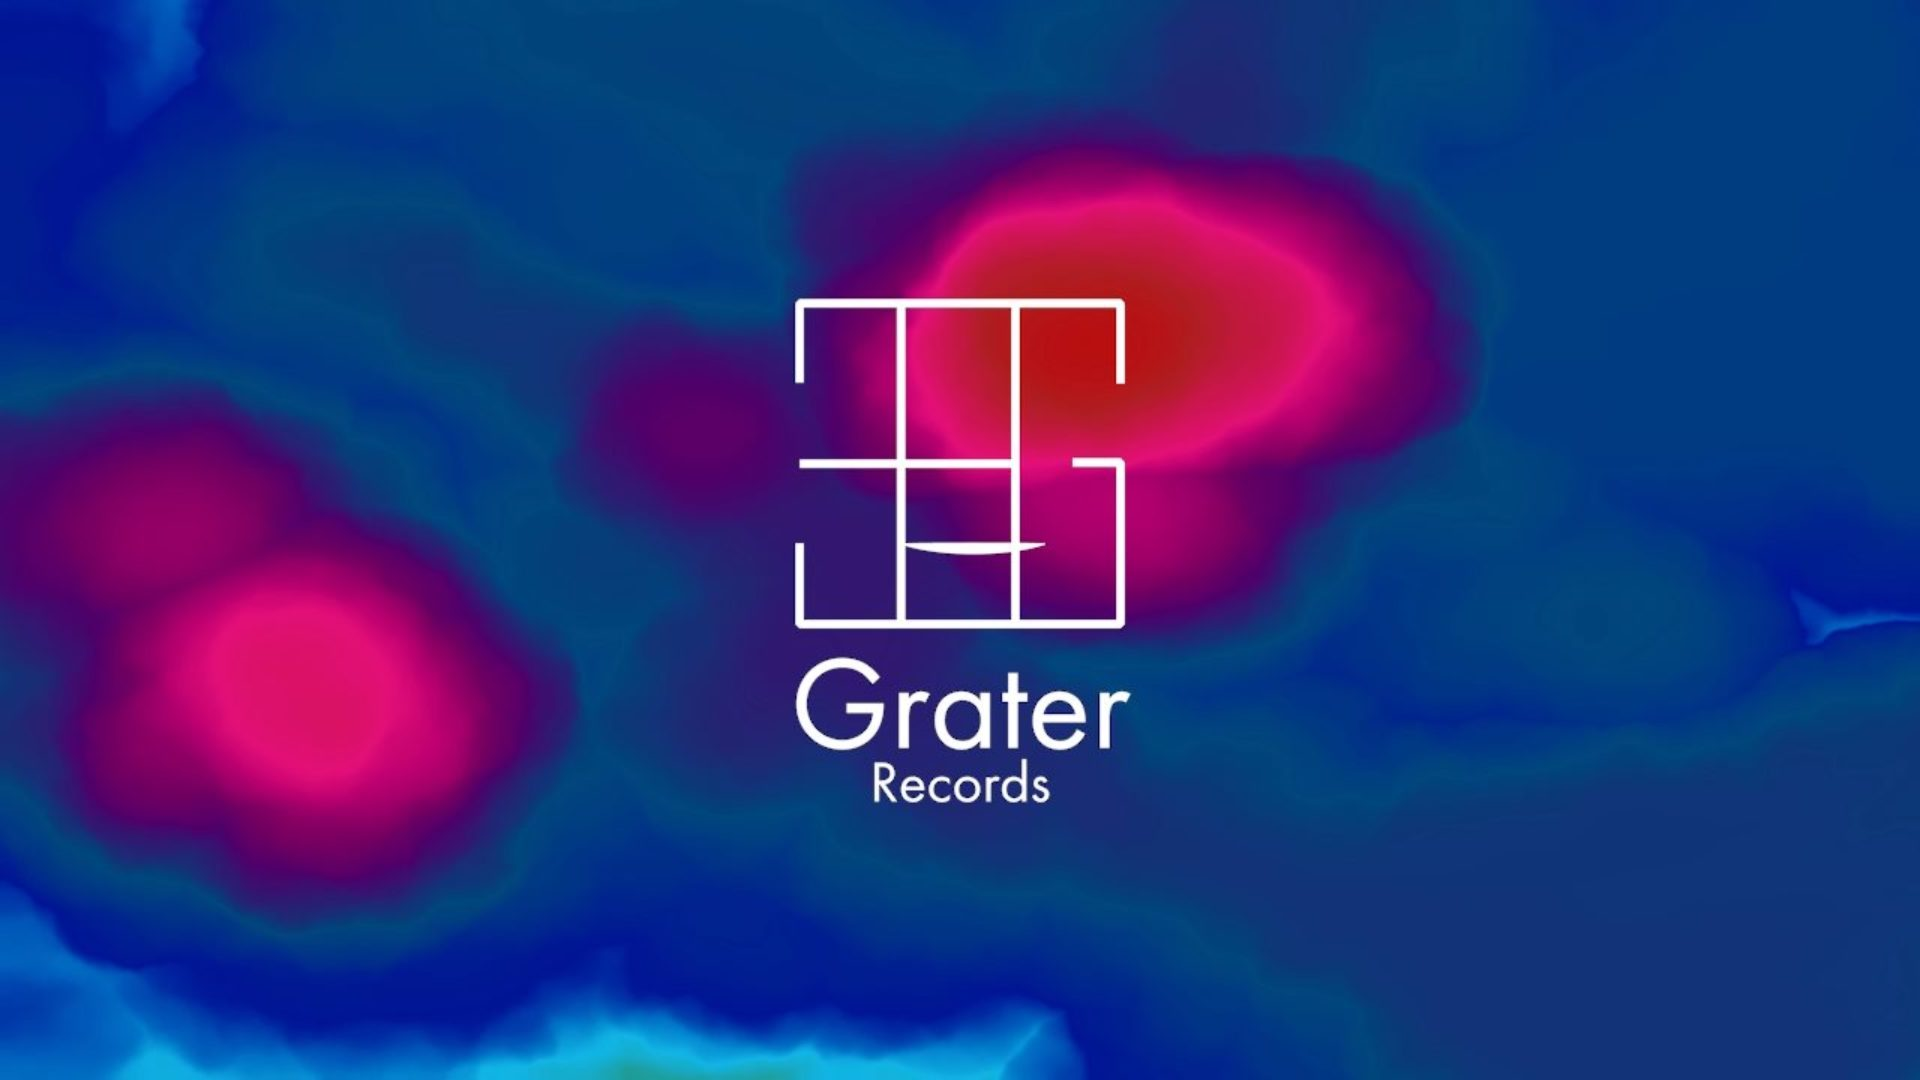 Grater Records